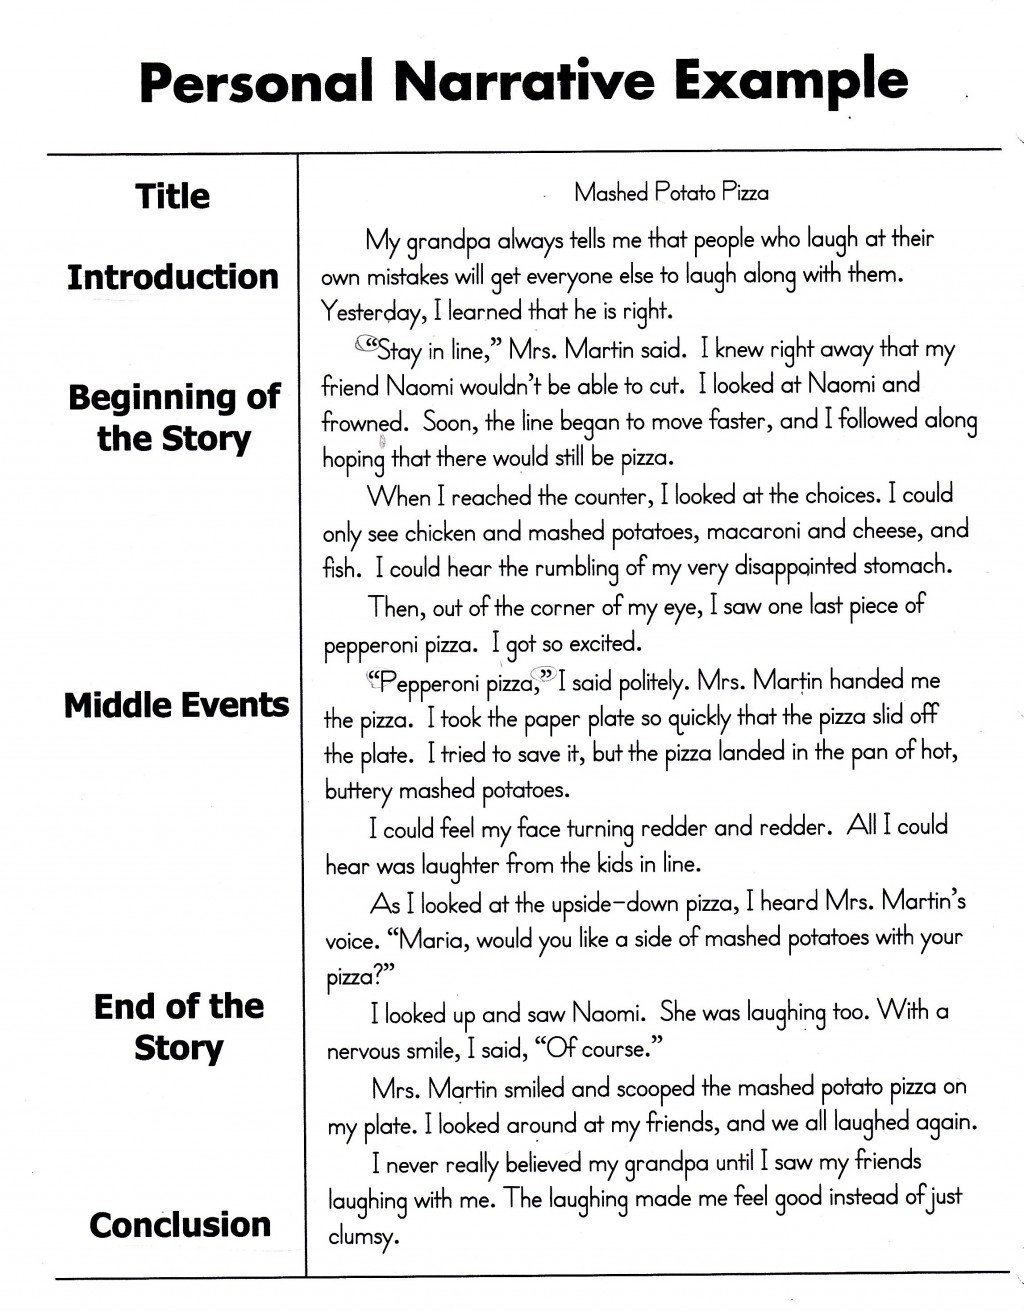 006 Narrative Essay Format Example Unique Personal Examples For Middle School High Pdf Large